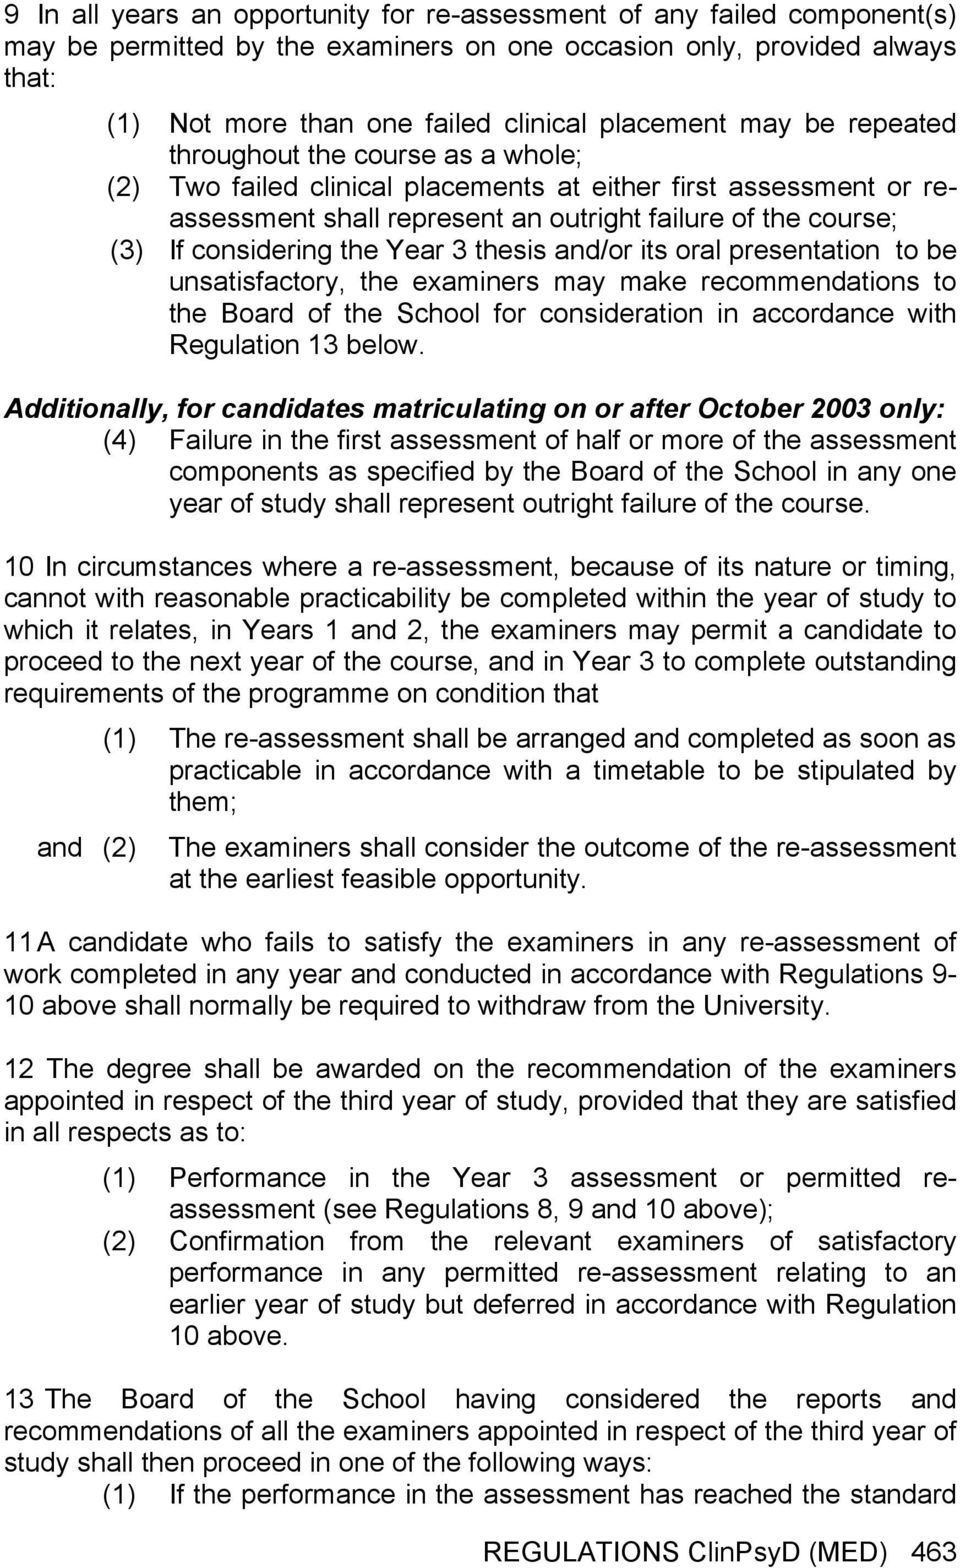 considering the Year 3 thesis and/or its oral presentation to be unsatisfactory, the examiners may make recommendations to the Board of the School for consideration in accordance with Regulation 13